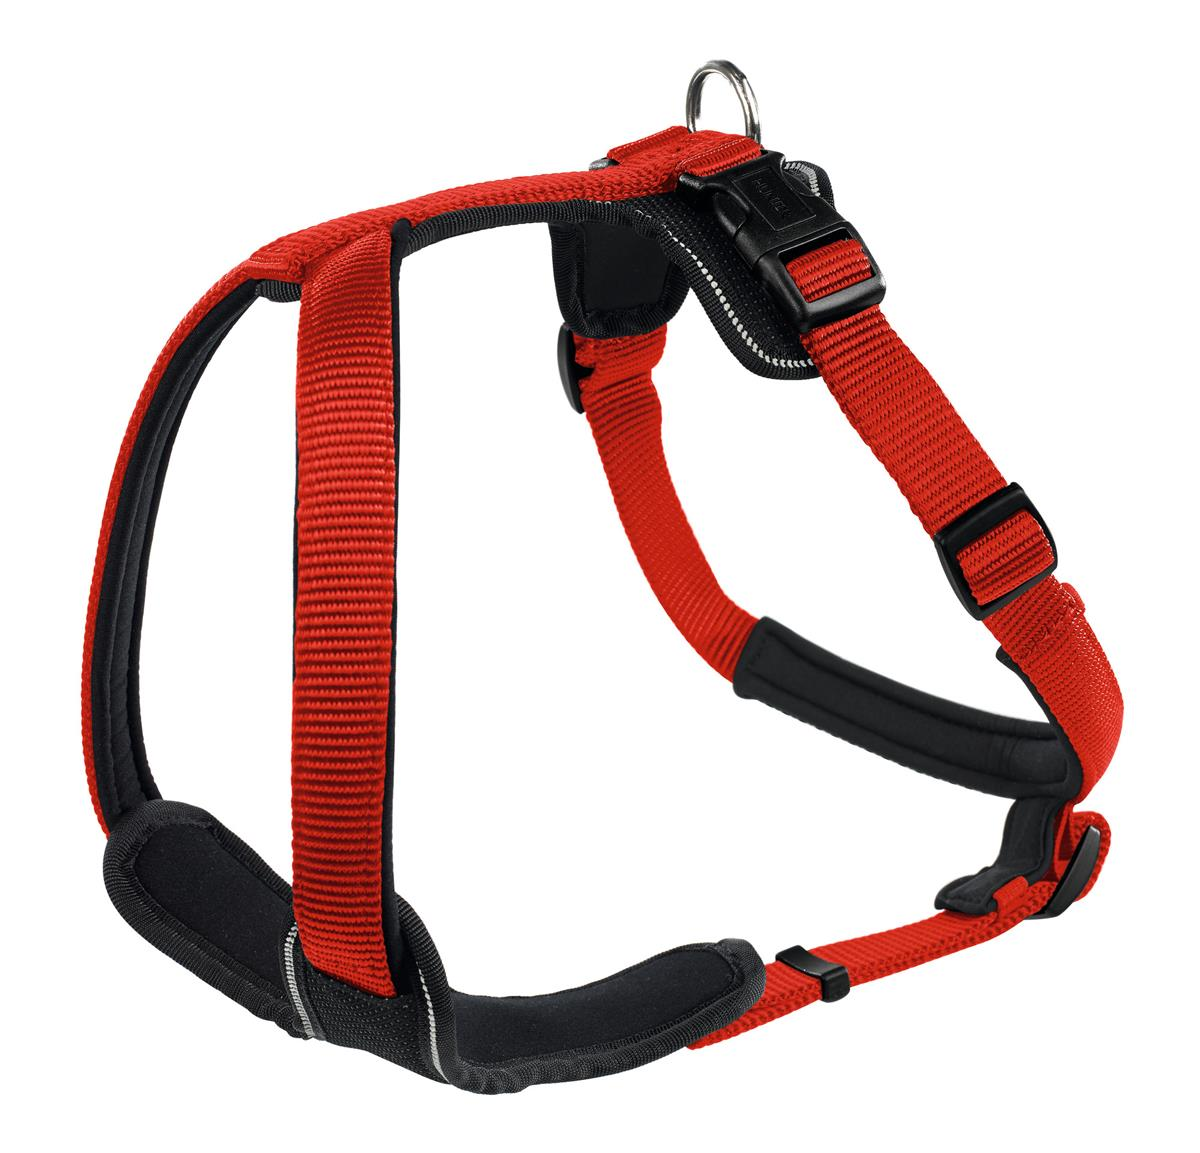 Harness Neopren XS 38-48 cm, 15 mm Nylon red/Neopren black